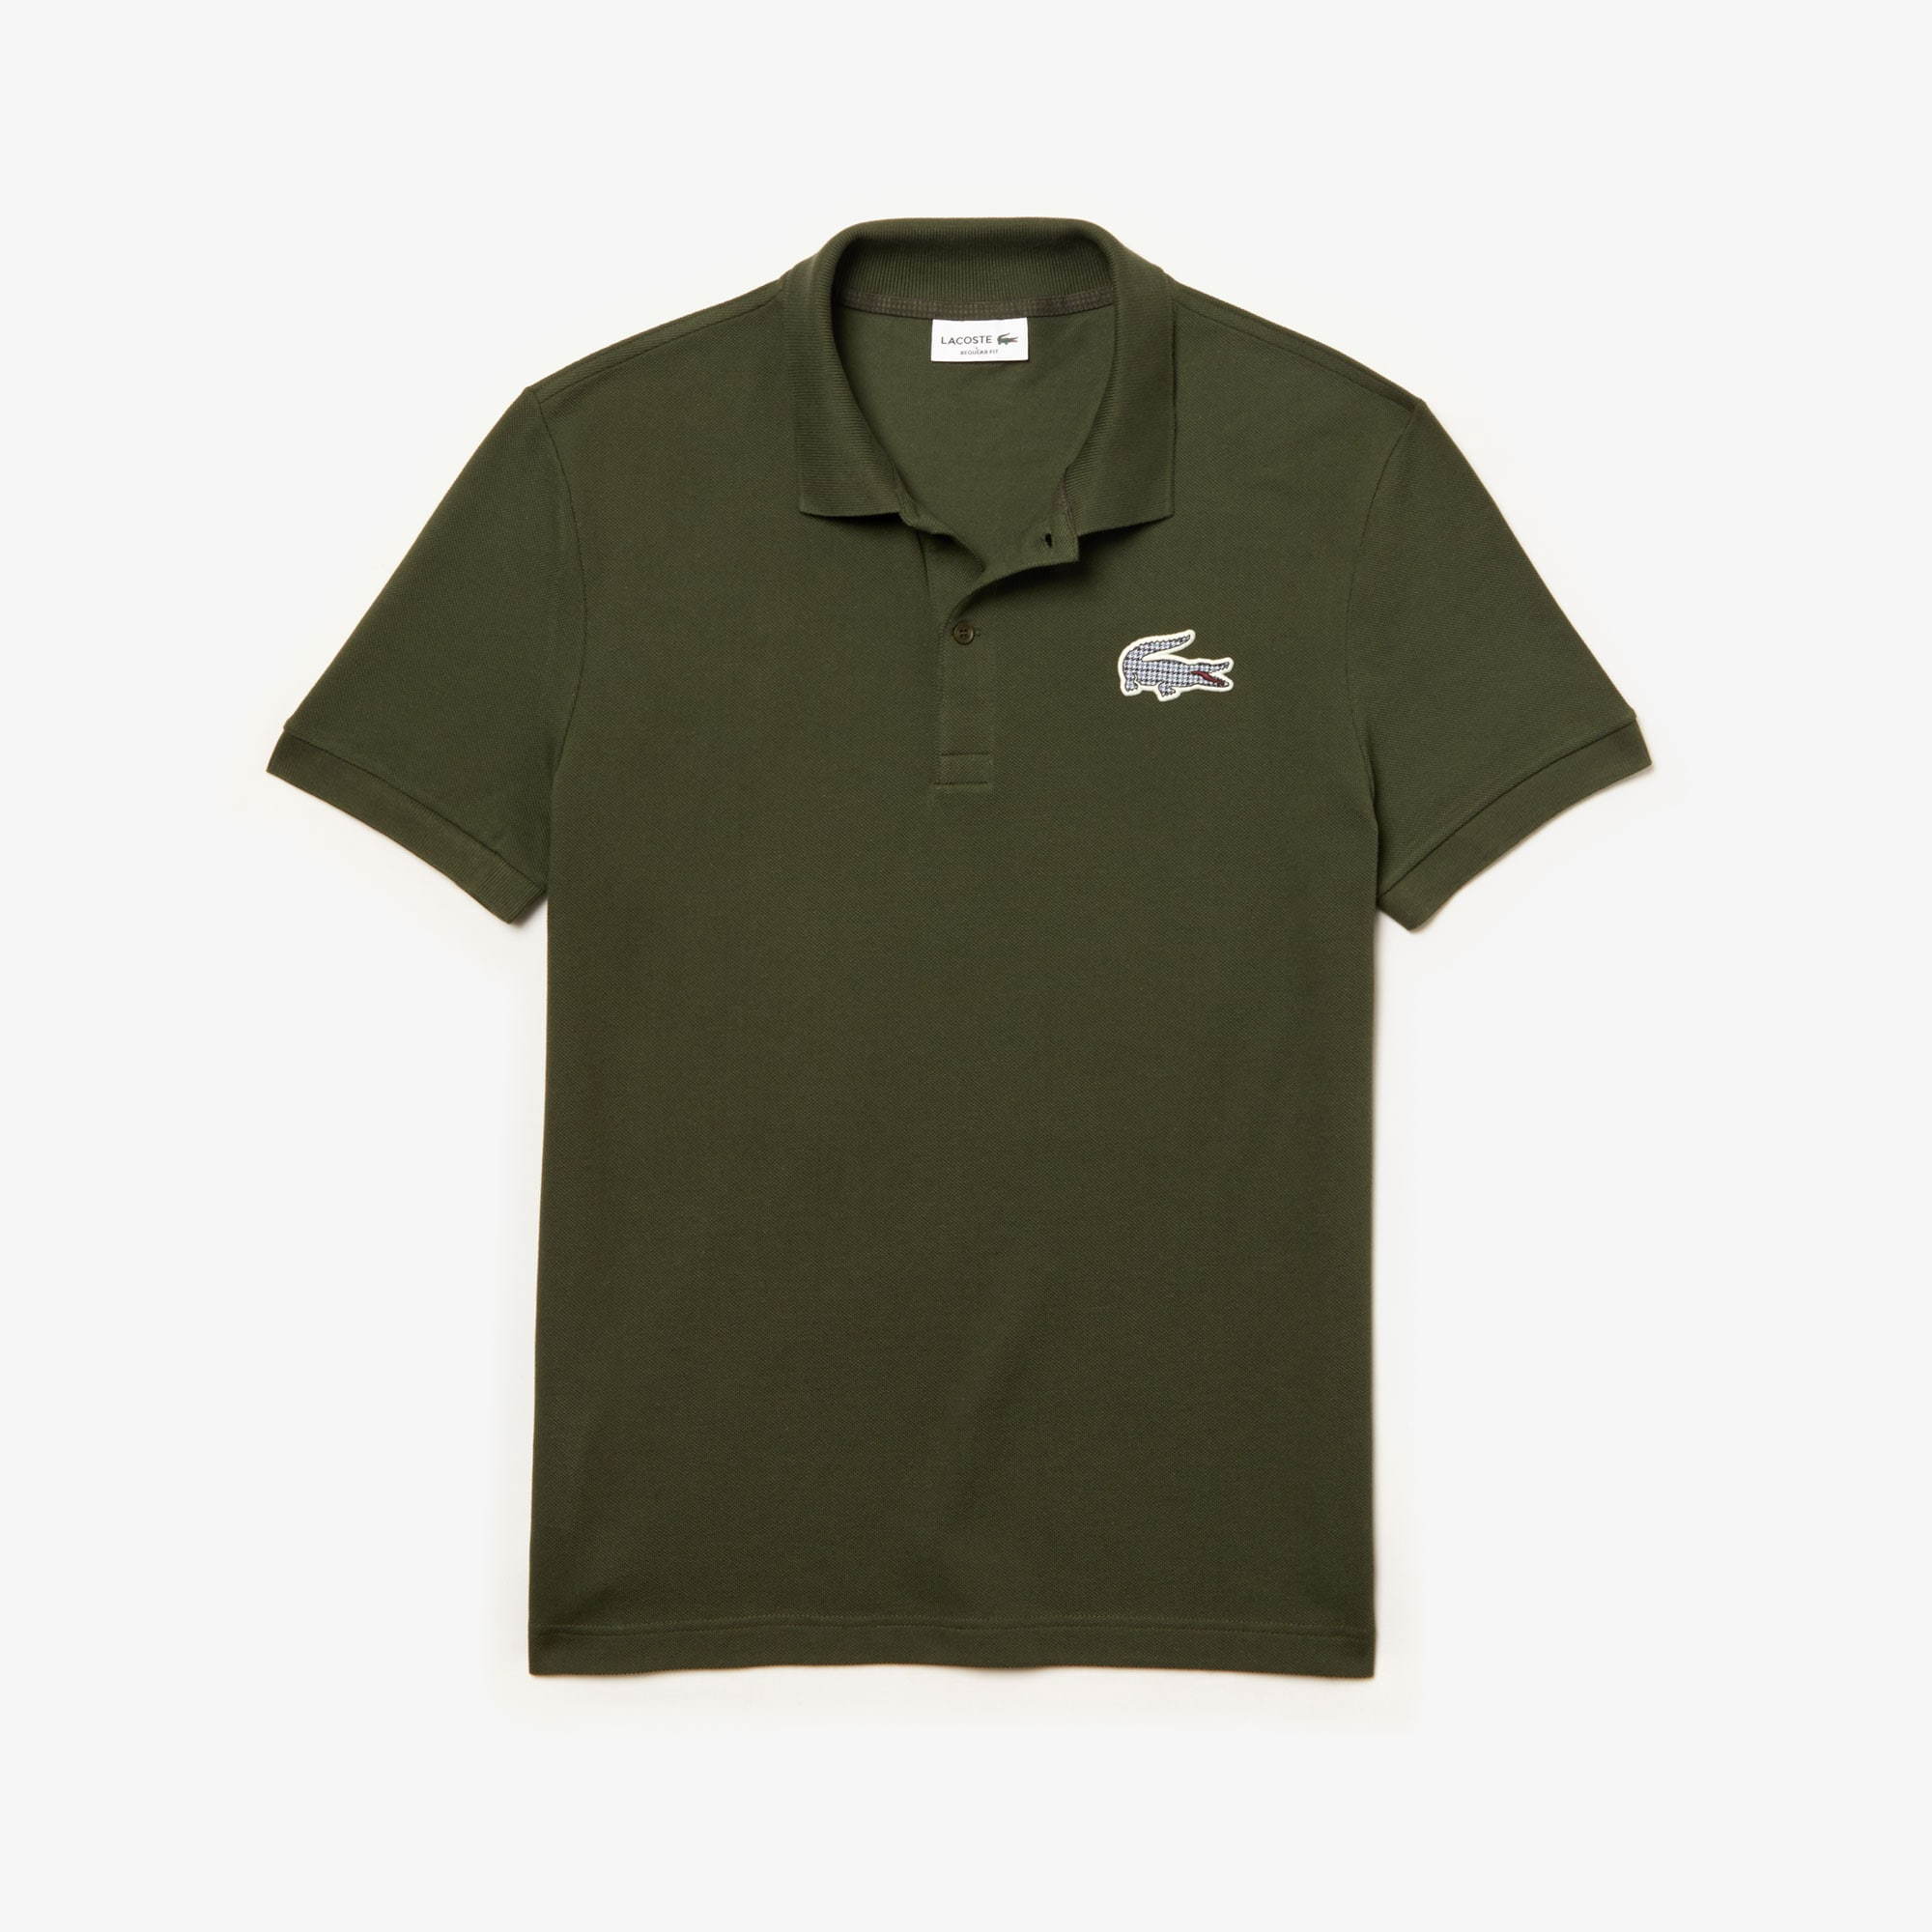 on sale 187f9 9dea6 Men's Polo Shirts | Polo shirts for men | LACOSTE